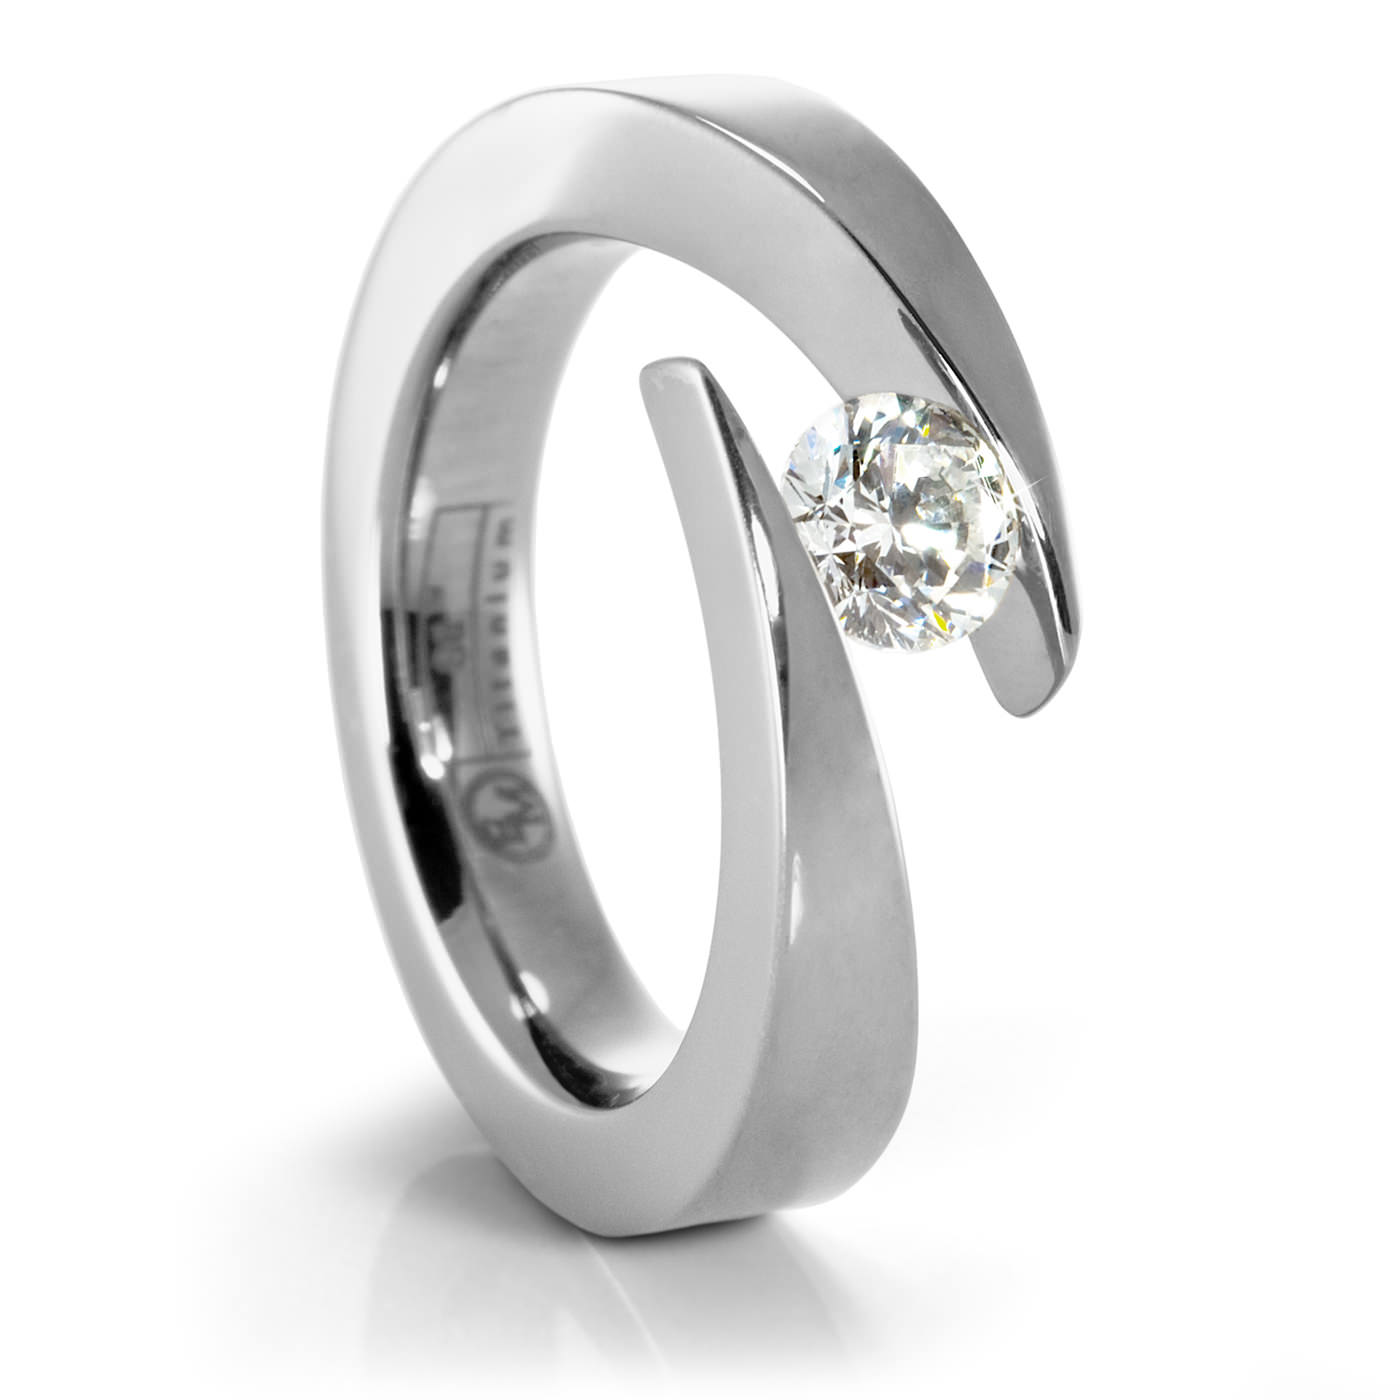 ring mechanical design wedding diamond tag vaka rings simple